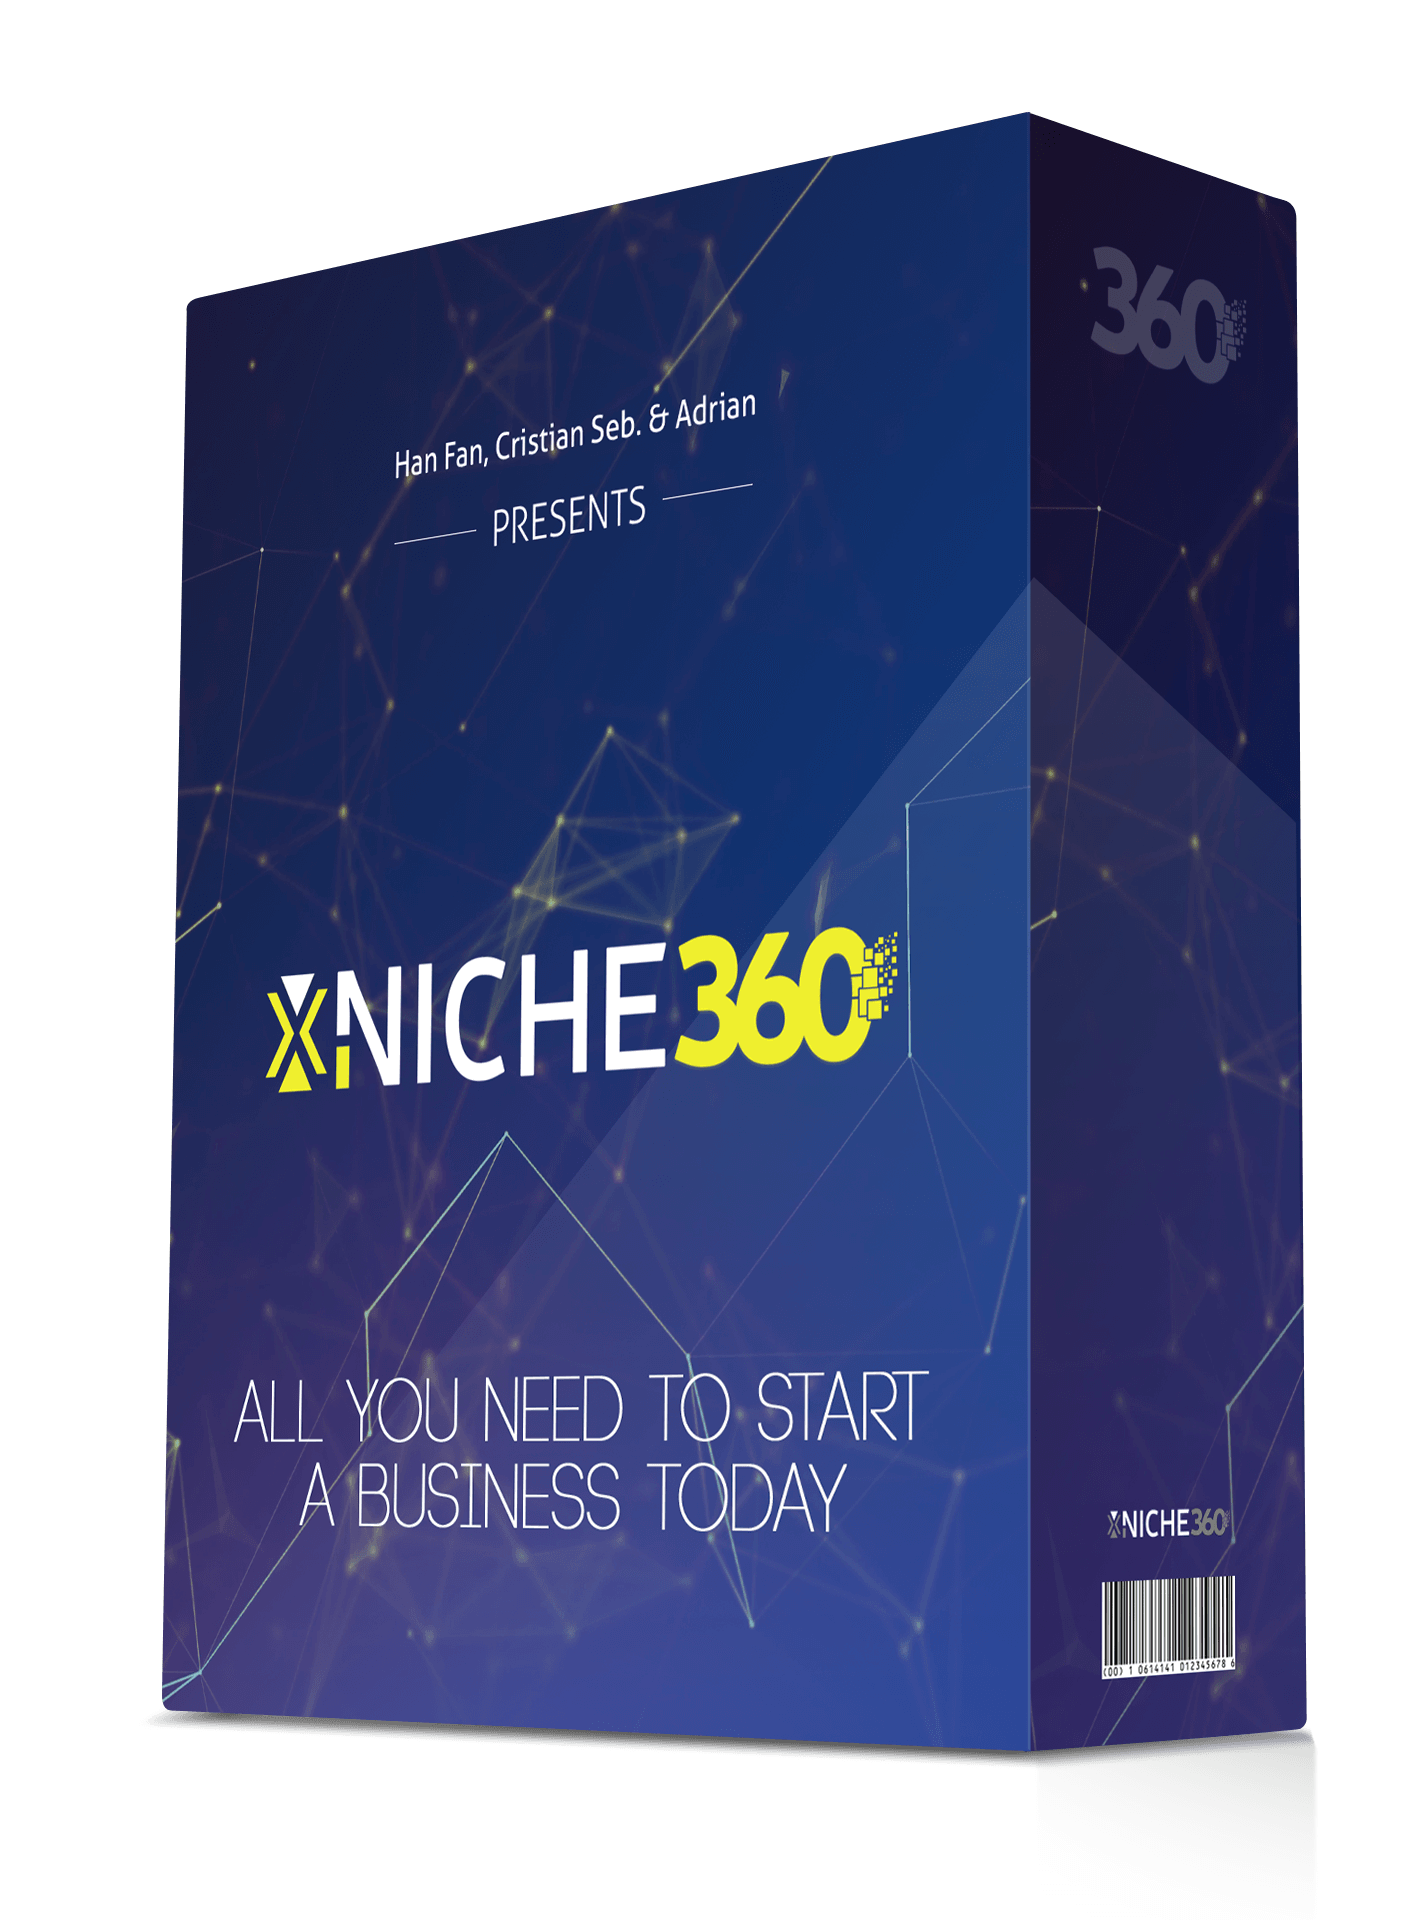 This Is The Easiest Way To FINALLY Make Money Online And Build A 6 Figure Business(XNiche360)